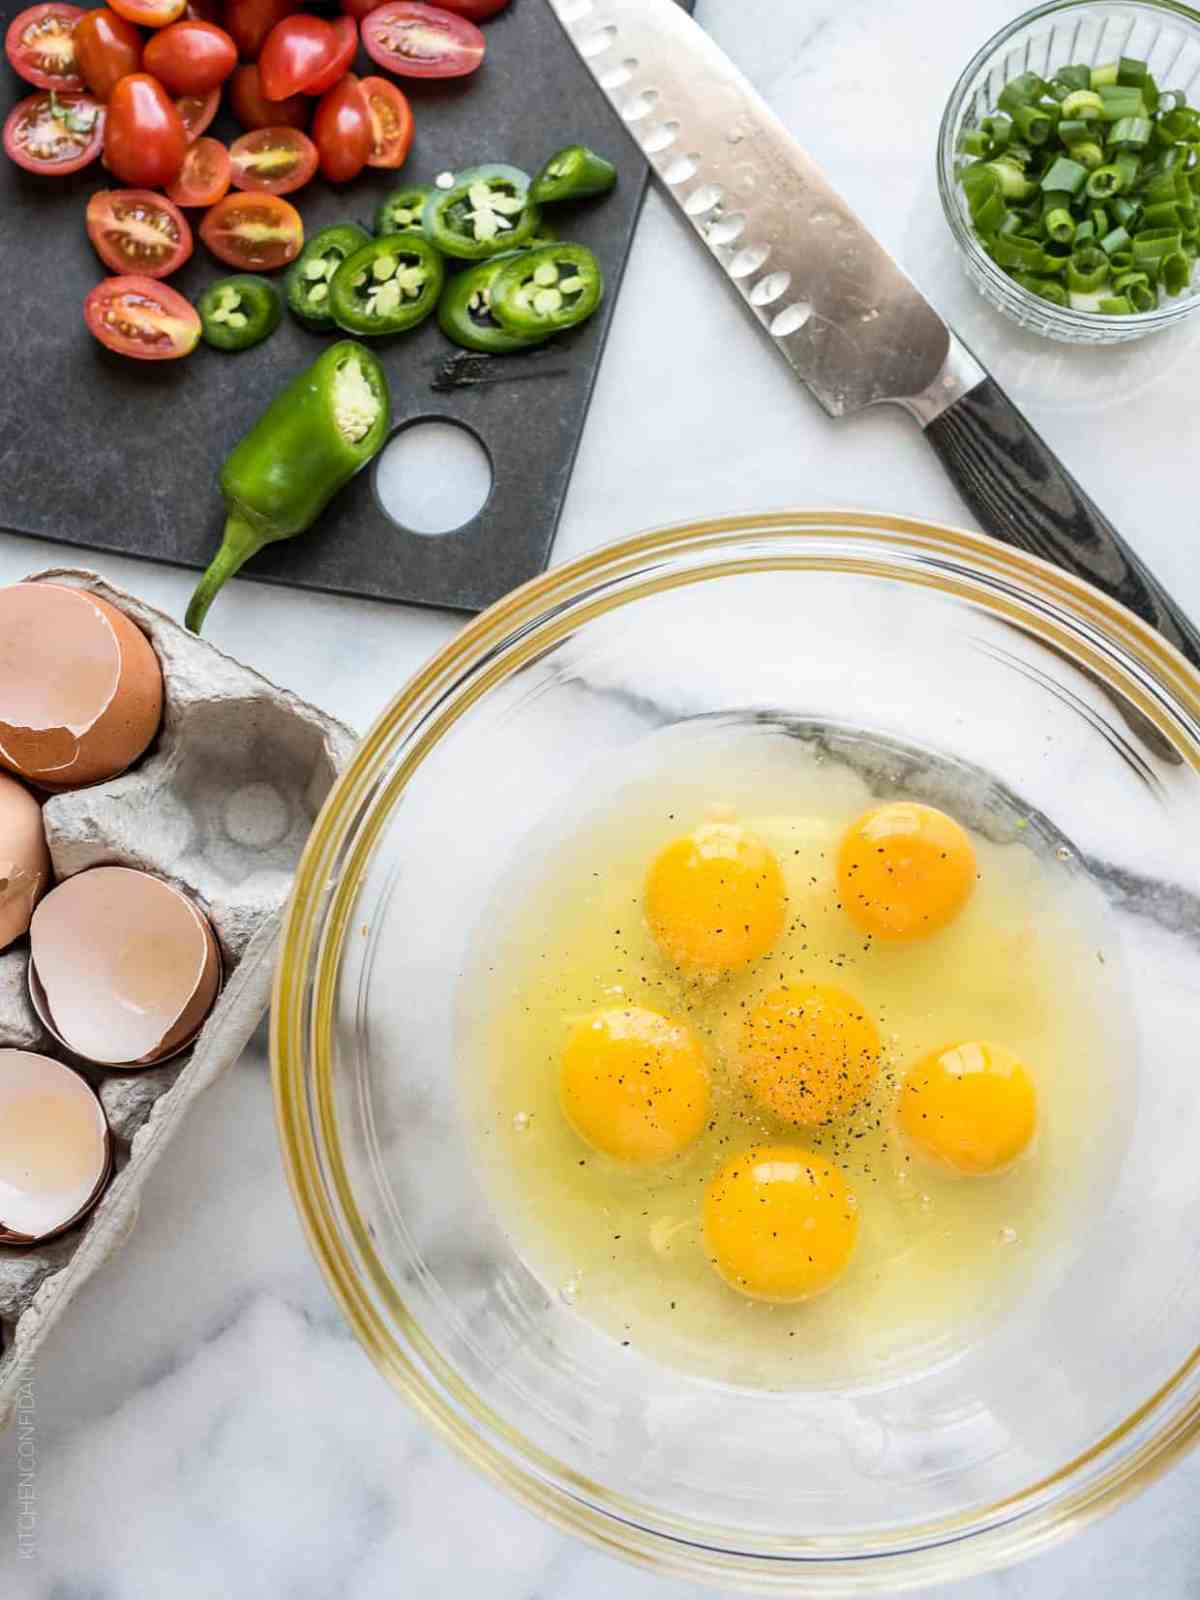 Six eggs cracked into a glass bowl surrounded by chopped peppers and tomatoes.